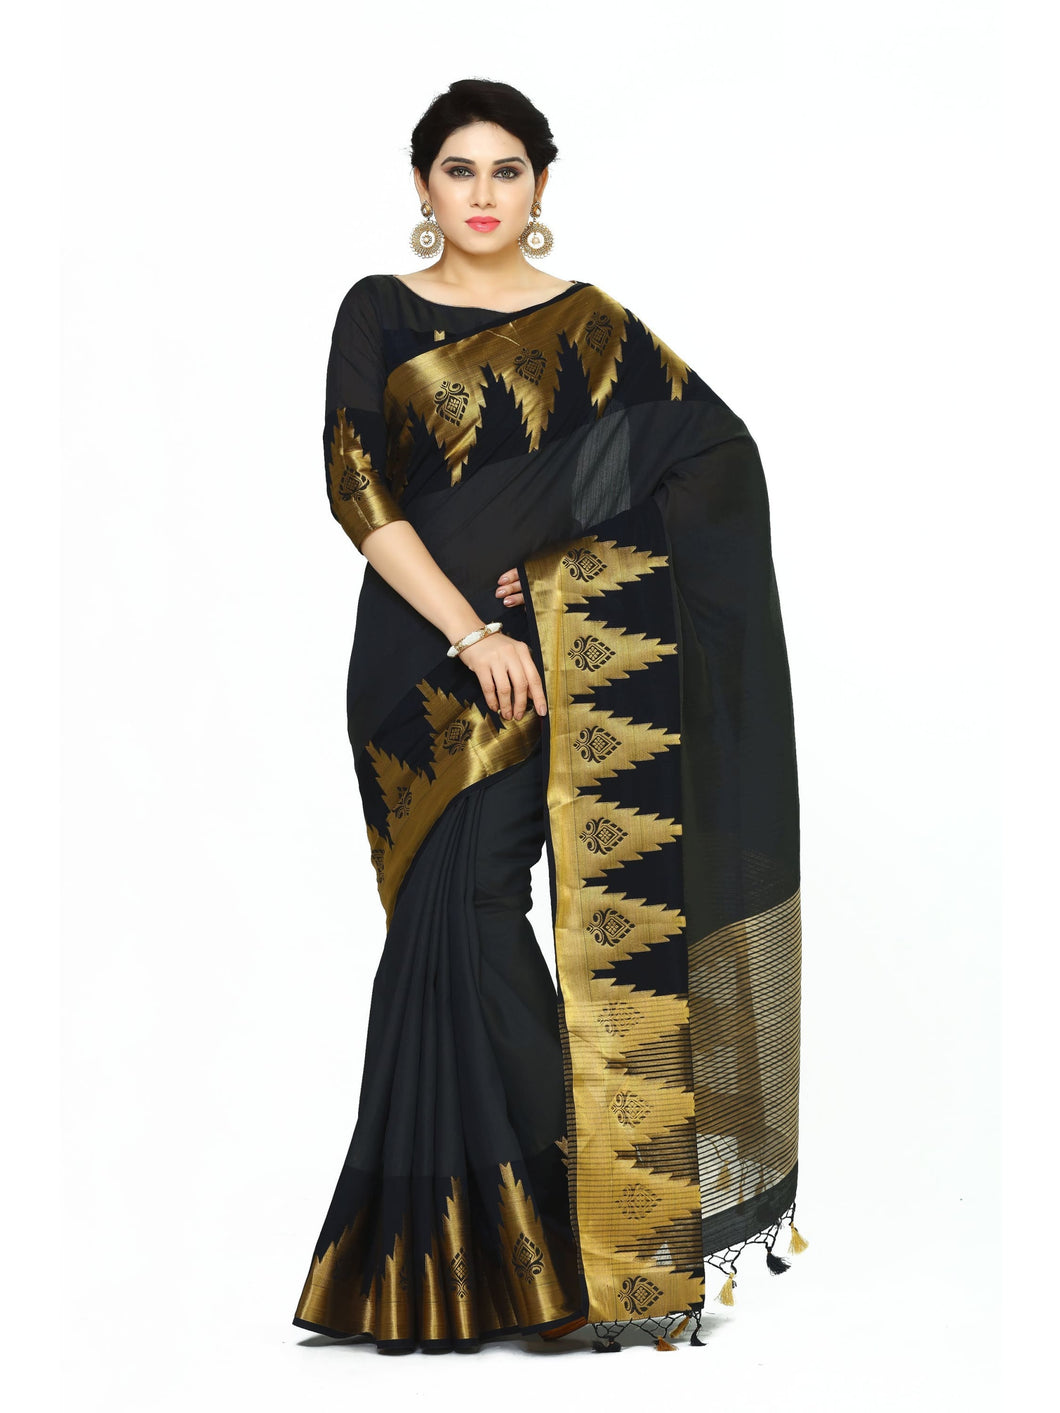 MIMOSA Latest Design Tussar Silk Banarasi Style Saree with Blouse in Color Black (4072-273-BLK) - kupindaindia